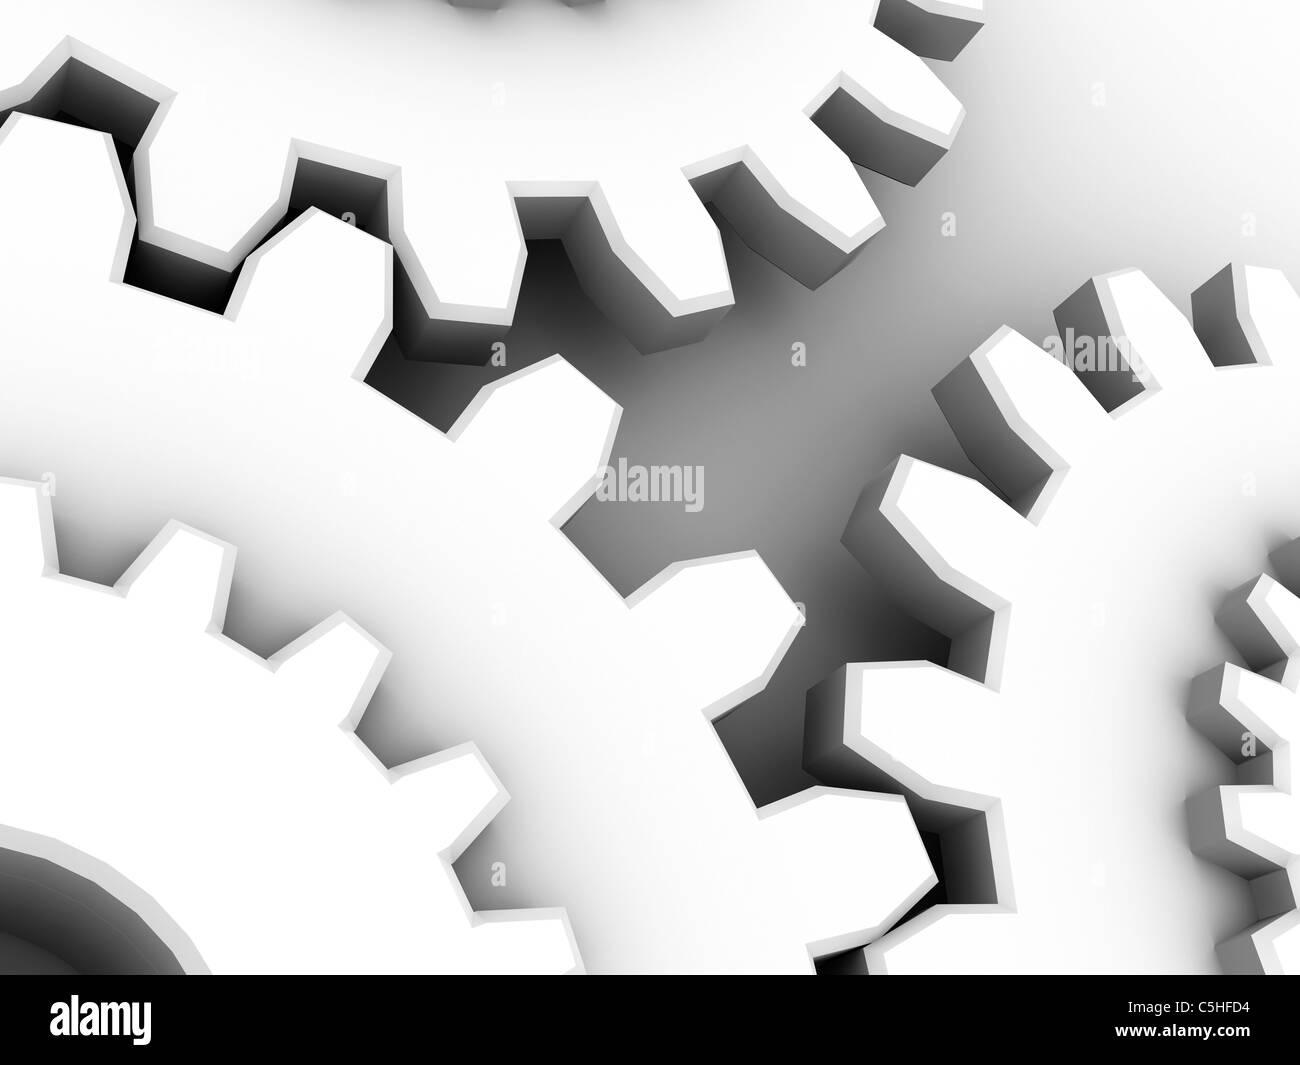 Gear wheels, computer artwork - Stock Image